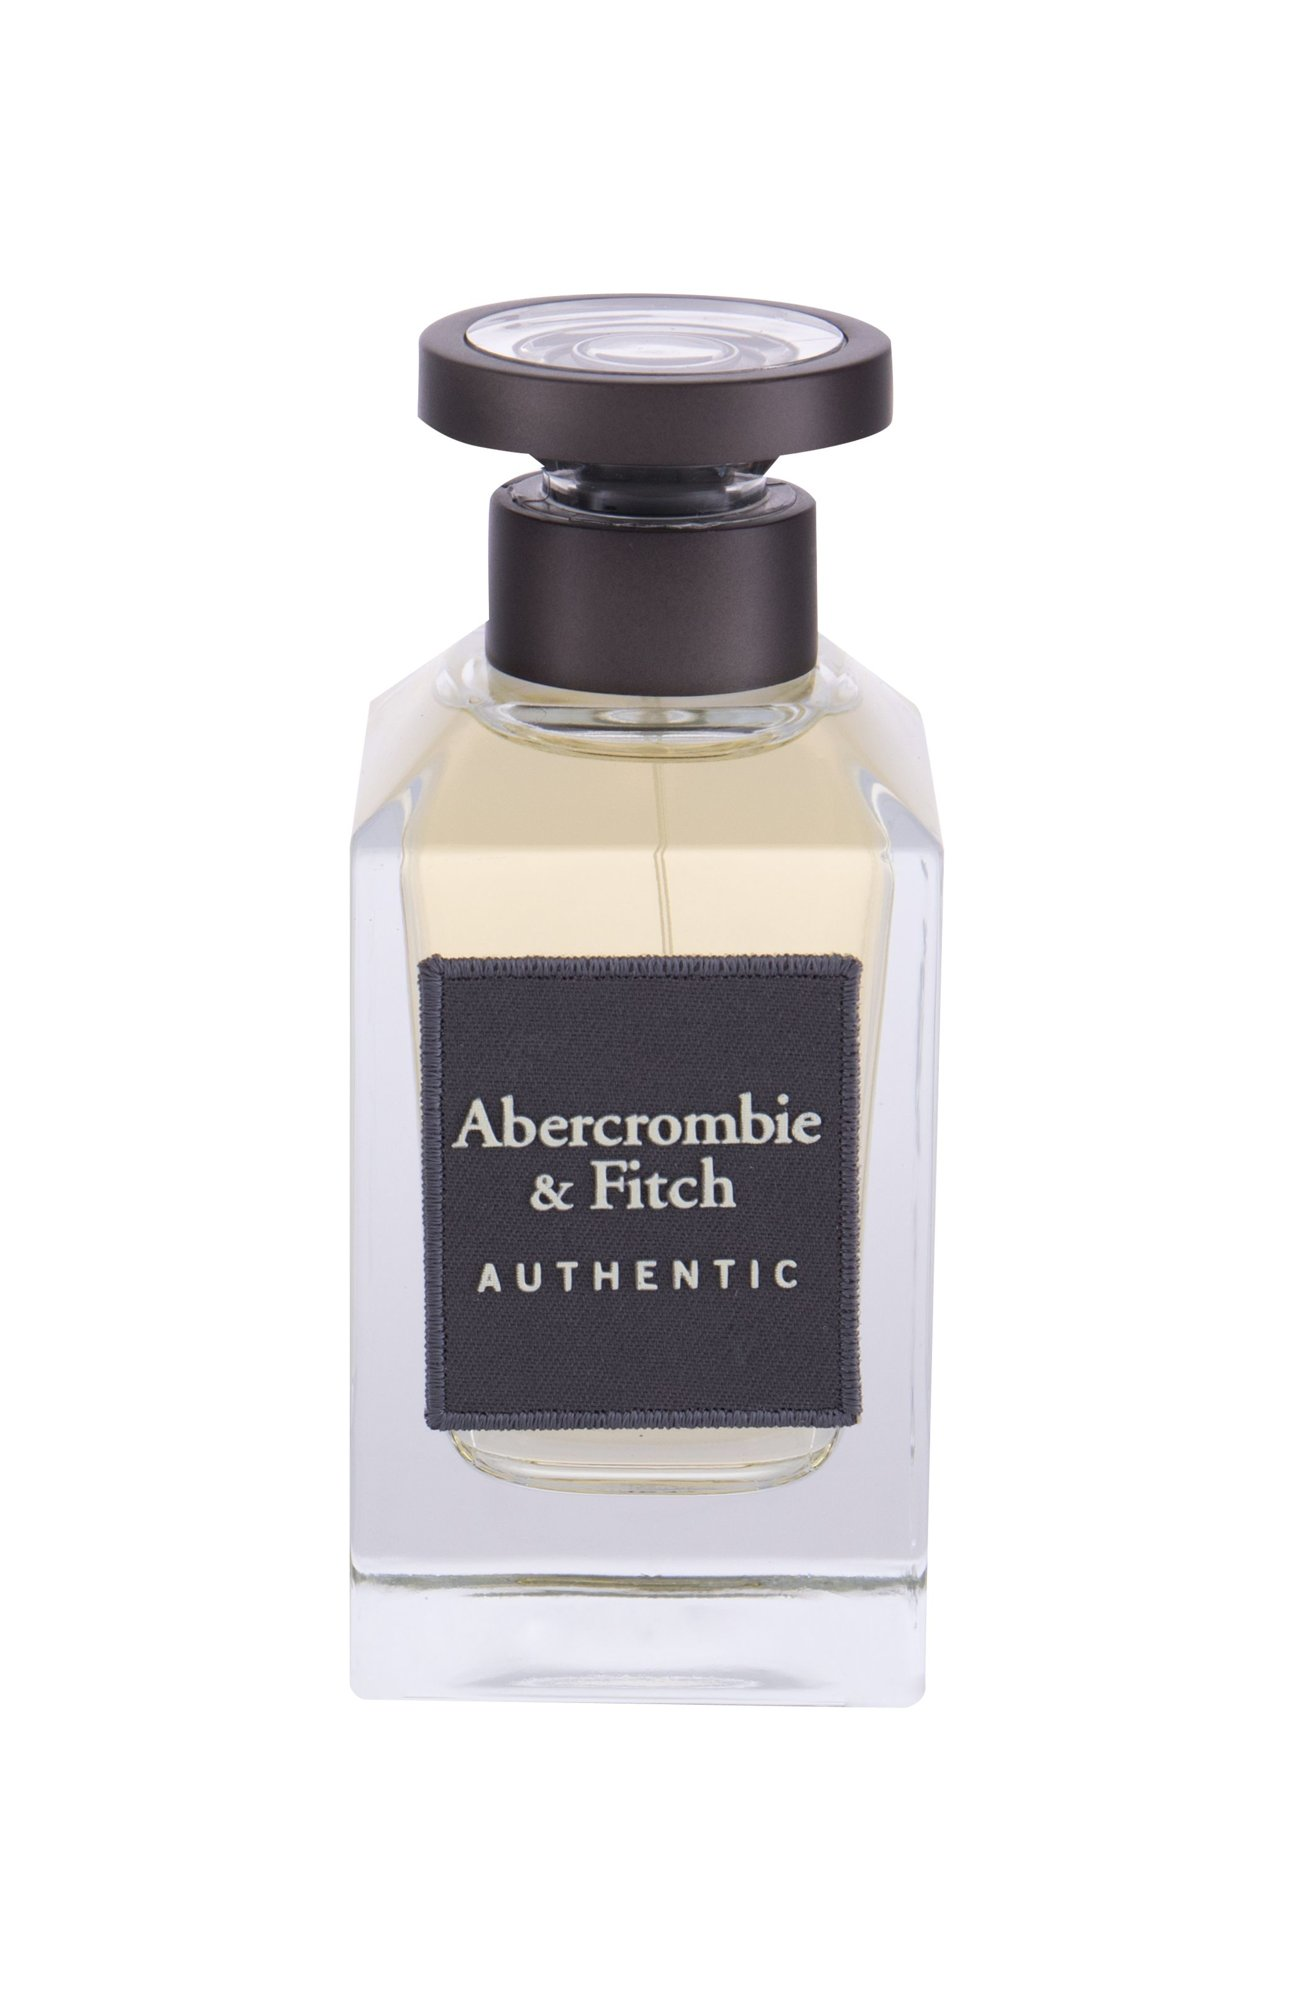 Abercrombie & Fitch Authentic, Toaletná voda 100ml